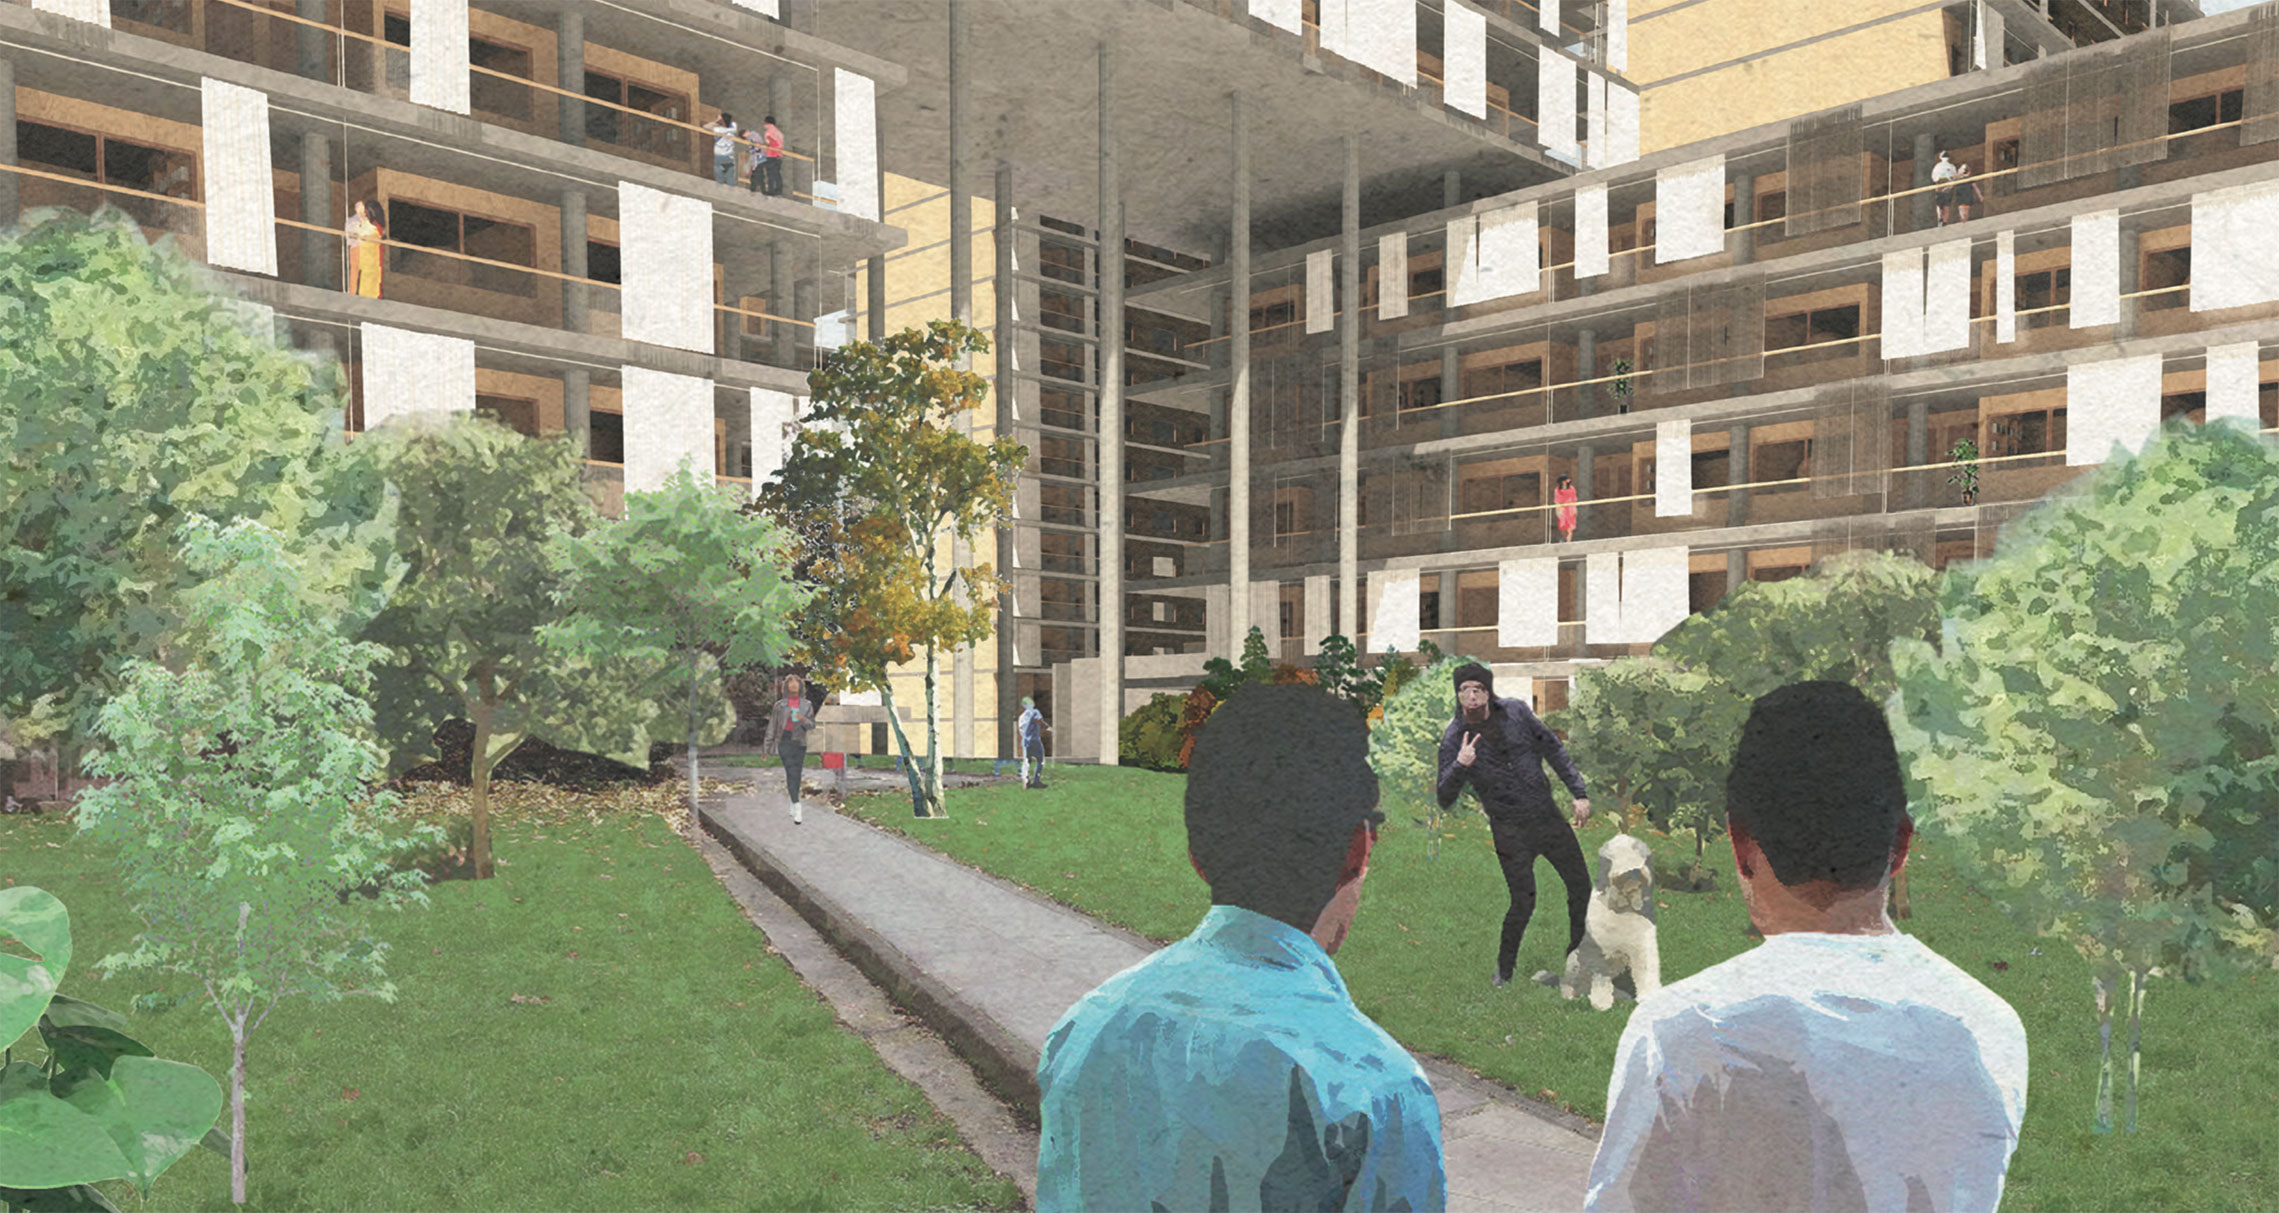 Courtyards have been designed to encourage pedestrians and public life.